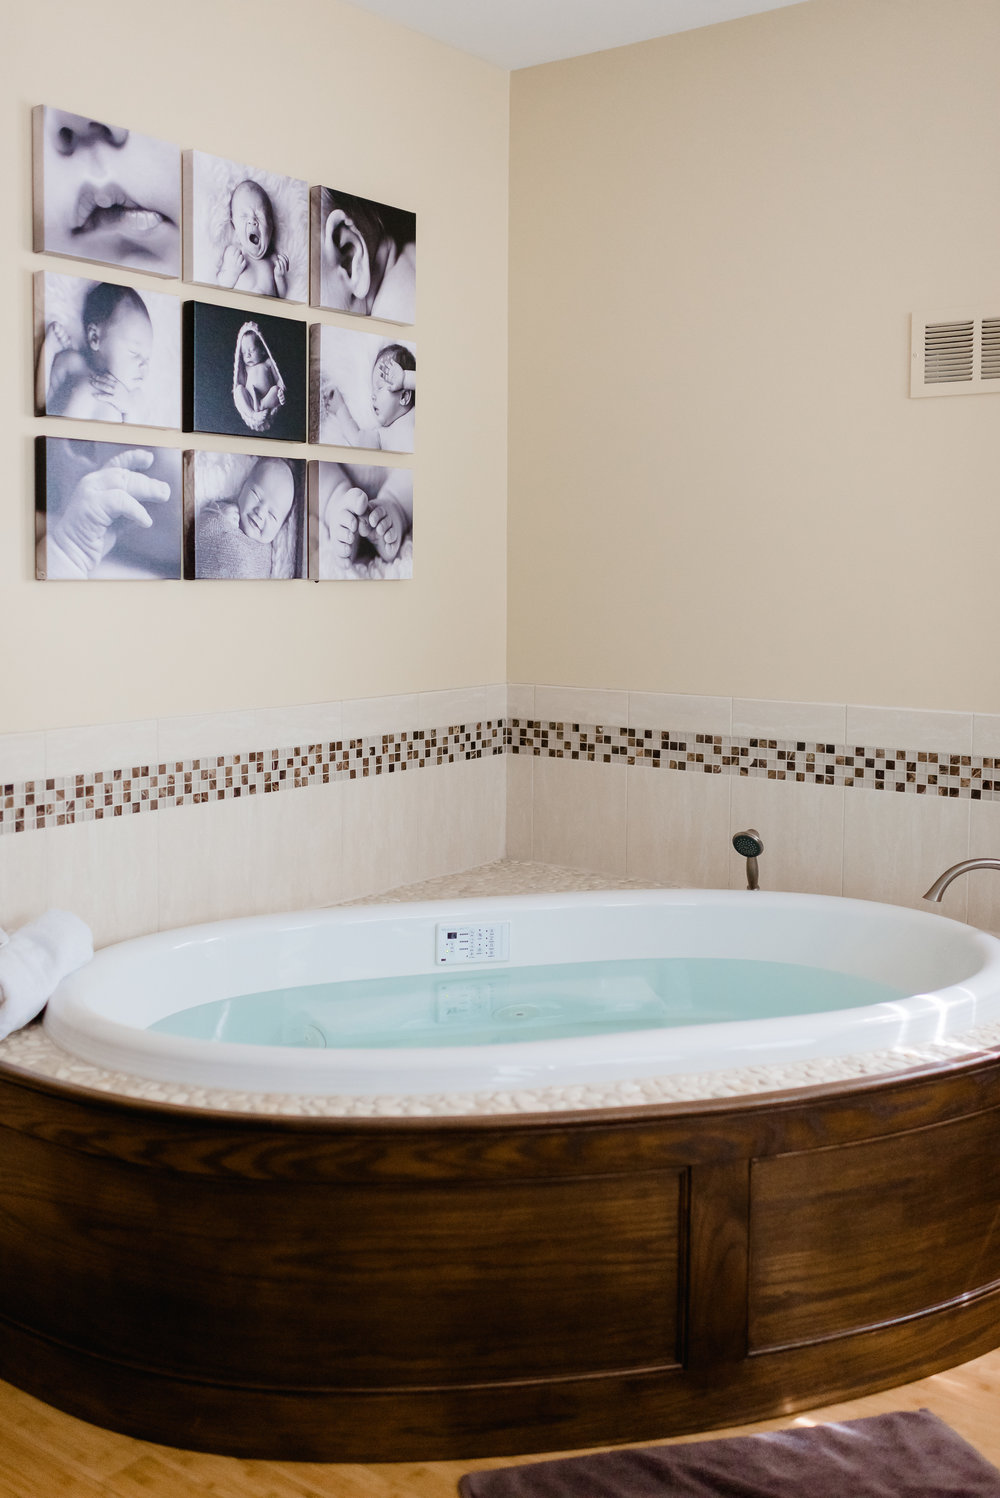 Birthing Tub at Health Foundations Birth Center - Minnesota Birth Photography